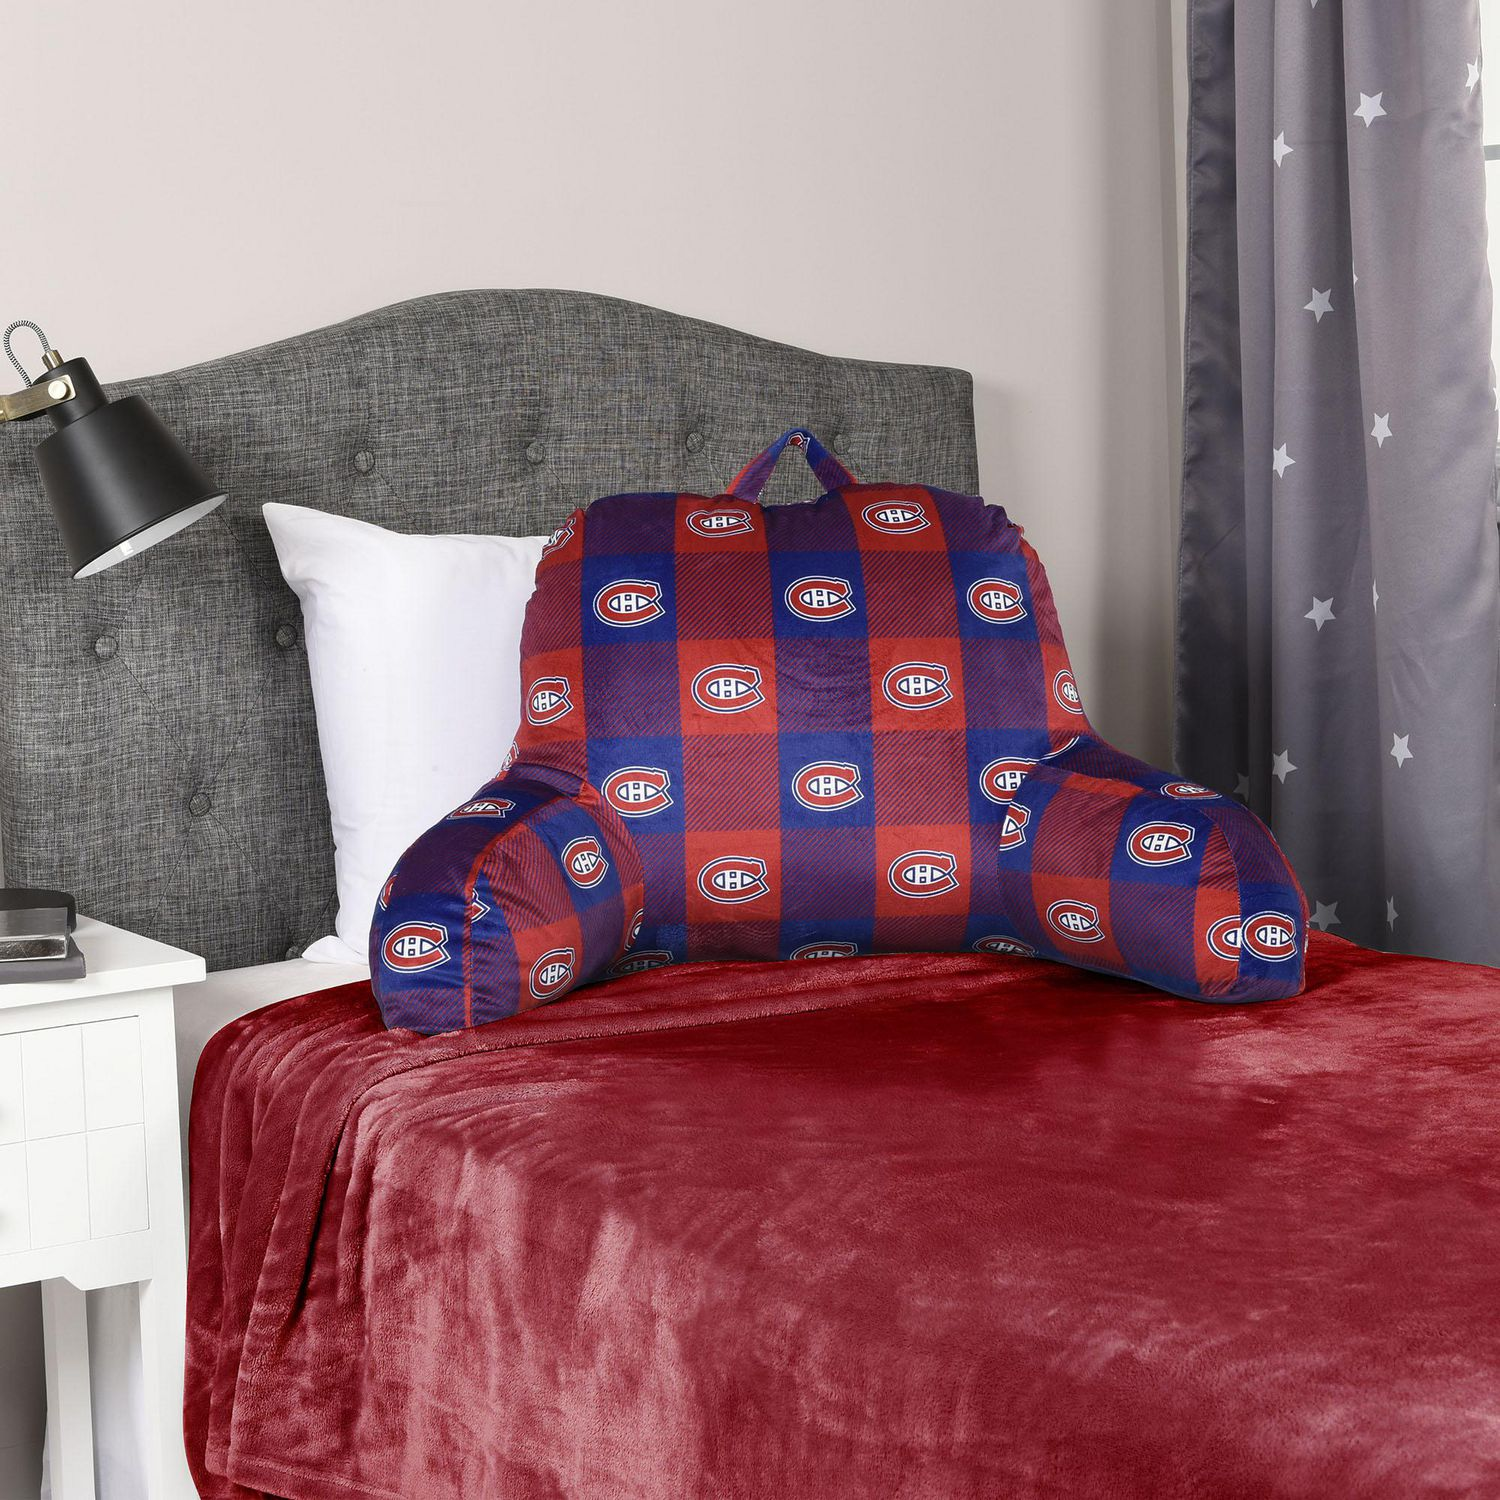 Nhl Montreal Canadiens Bed Rest Pillow Walmart Canada